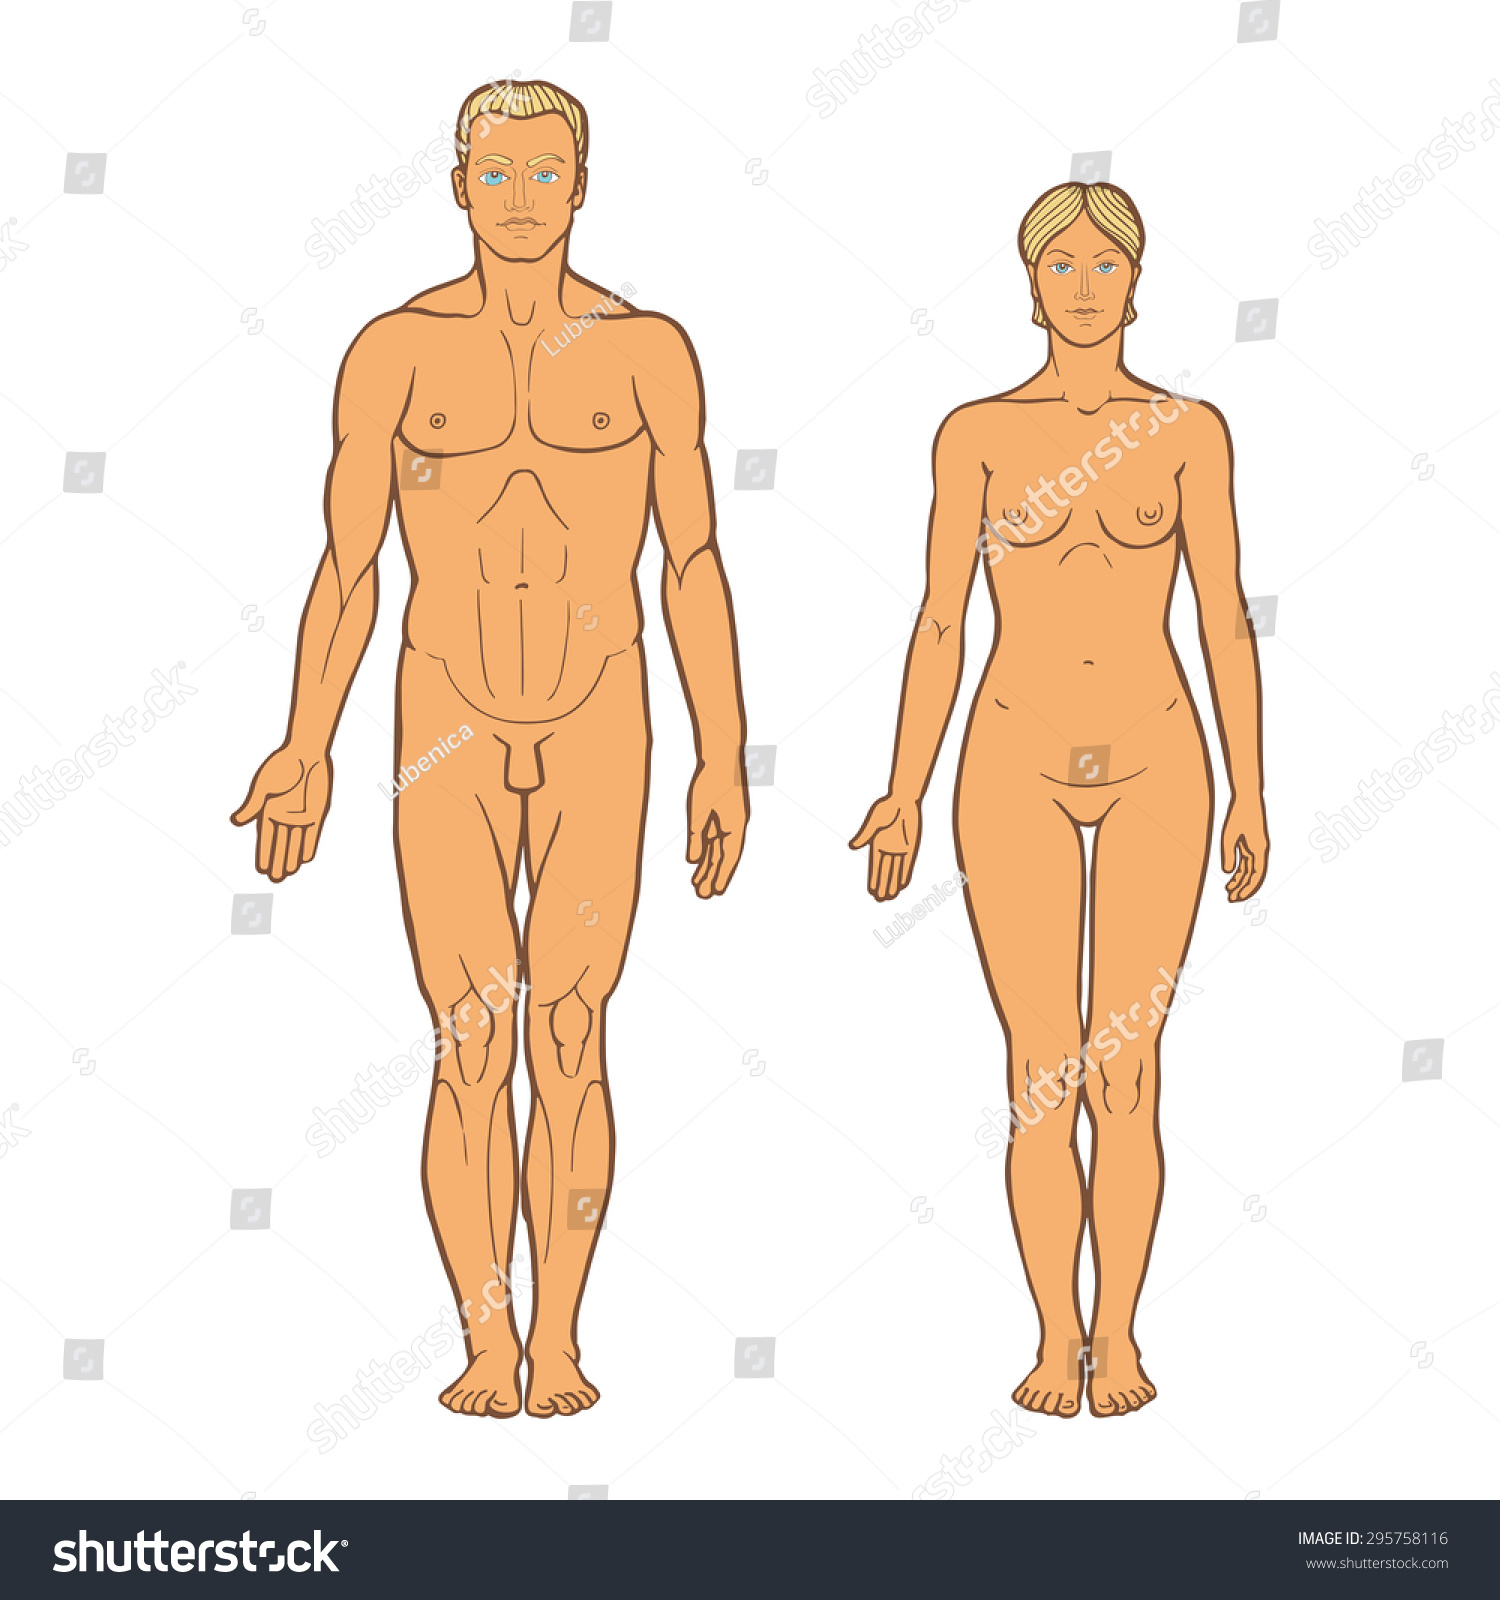 realistic drawing naked man woman standing stock photo (photo